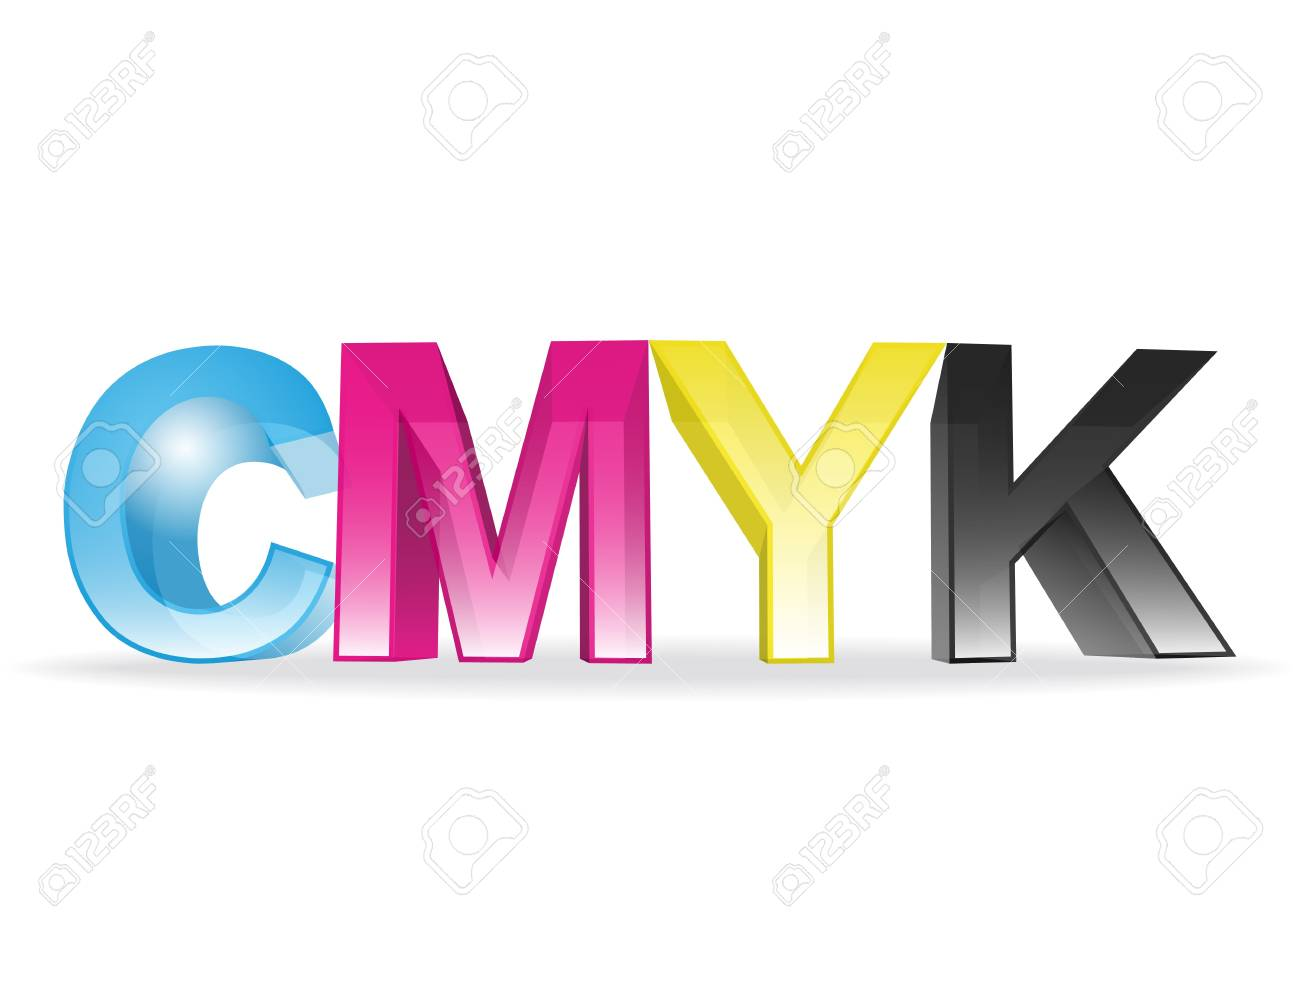 the letters CMYK Stock Vector - 13864297